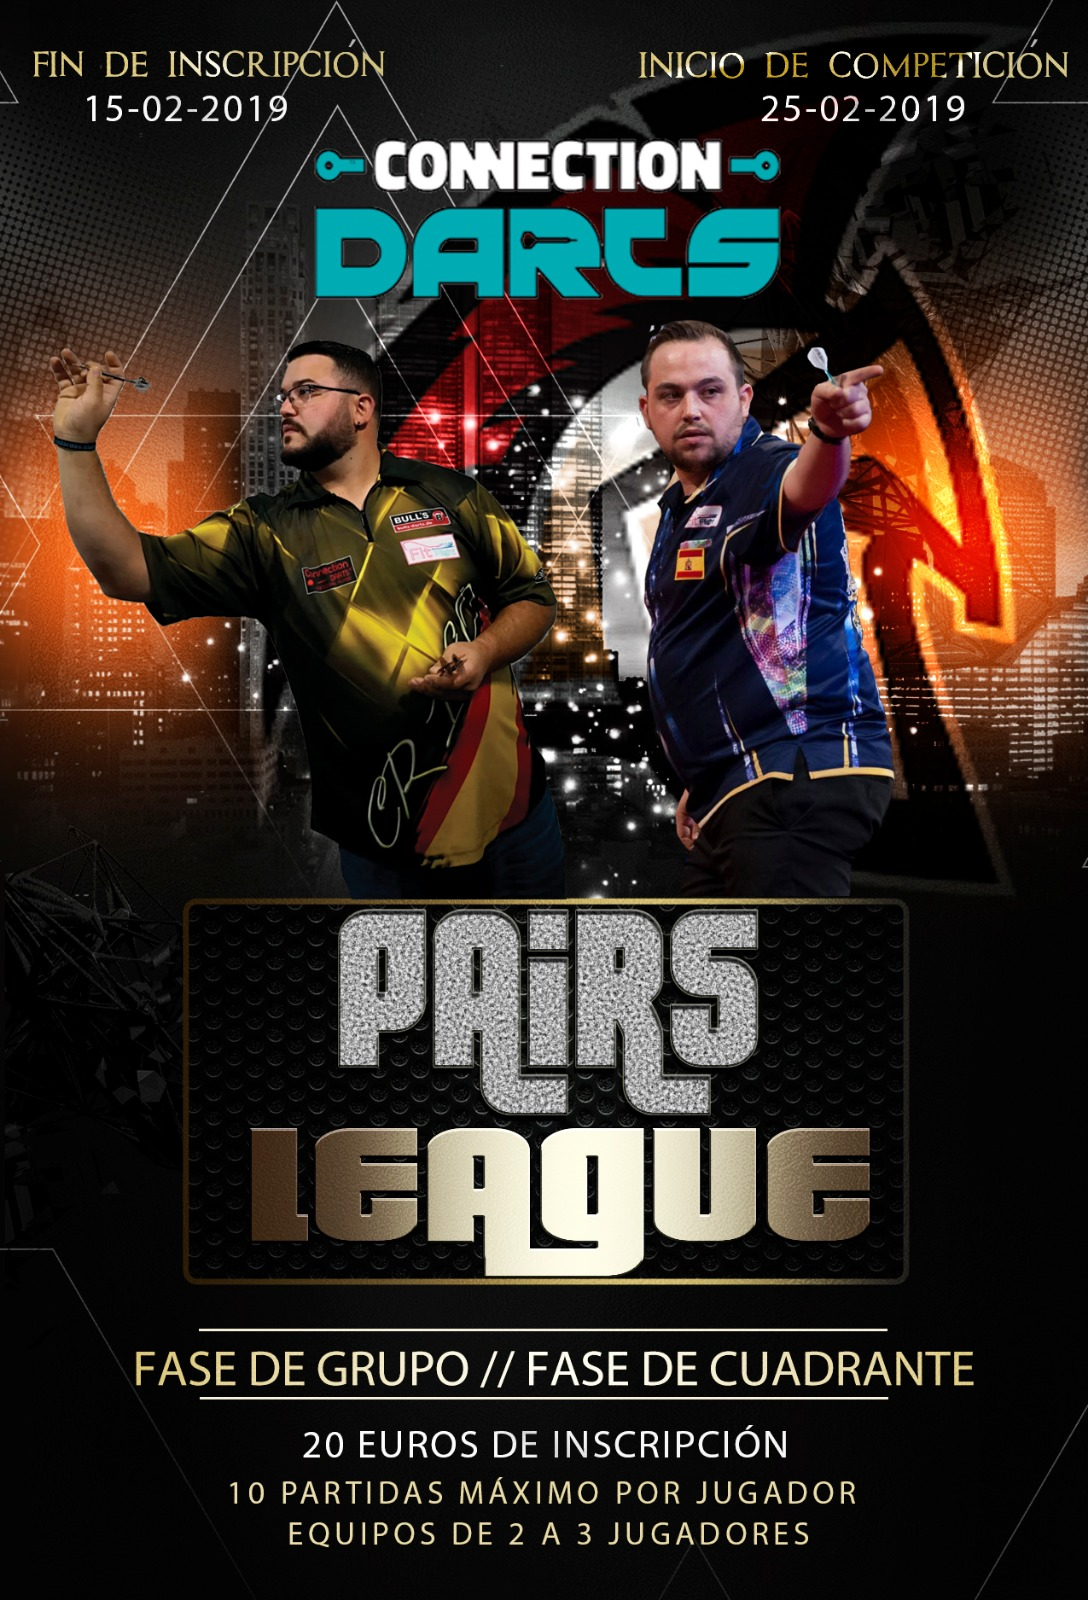 PAIRS LEAGUE